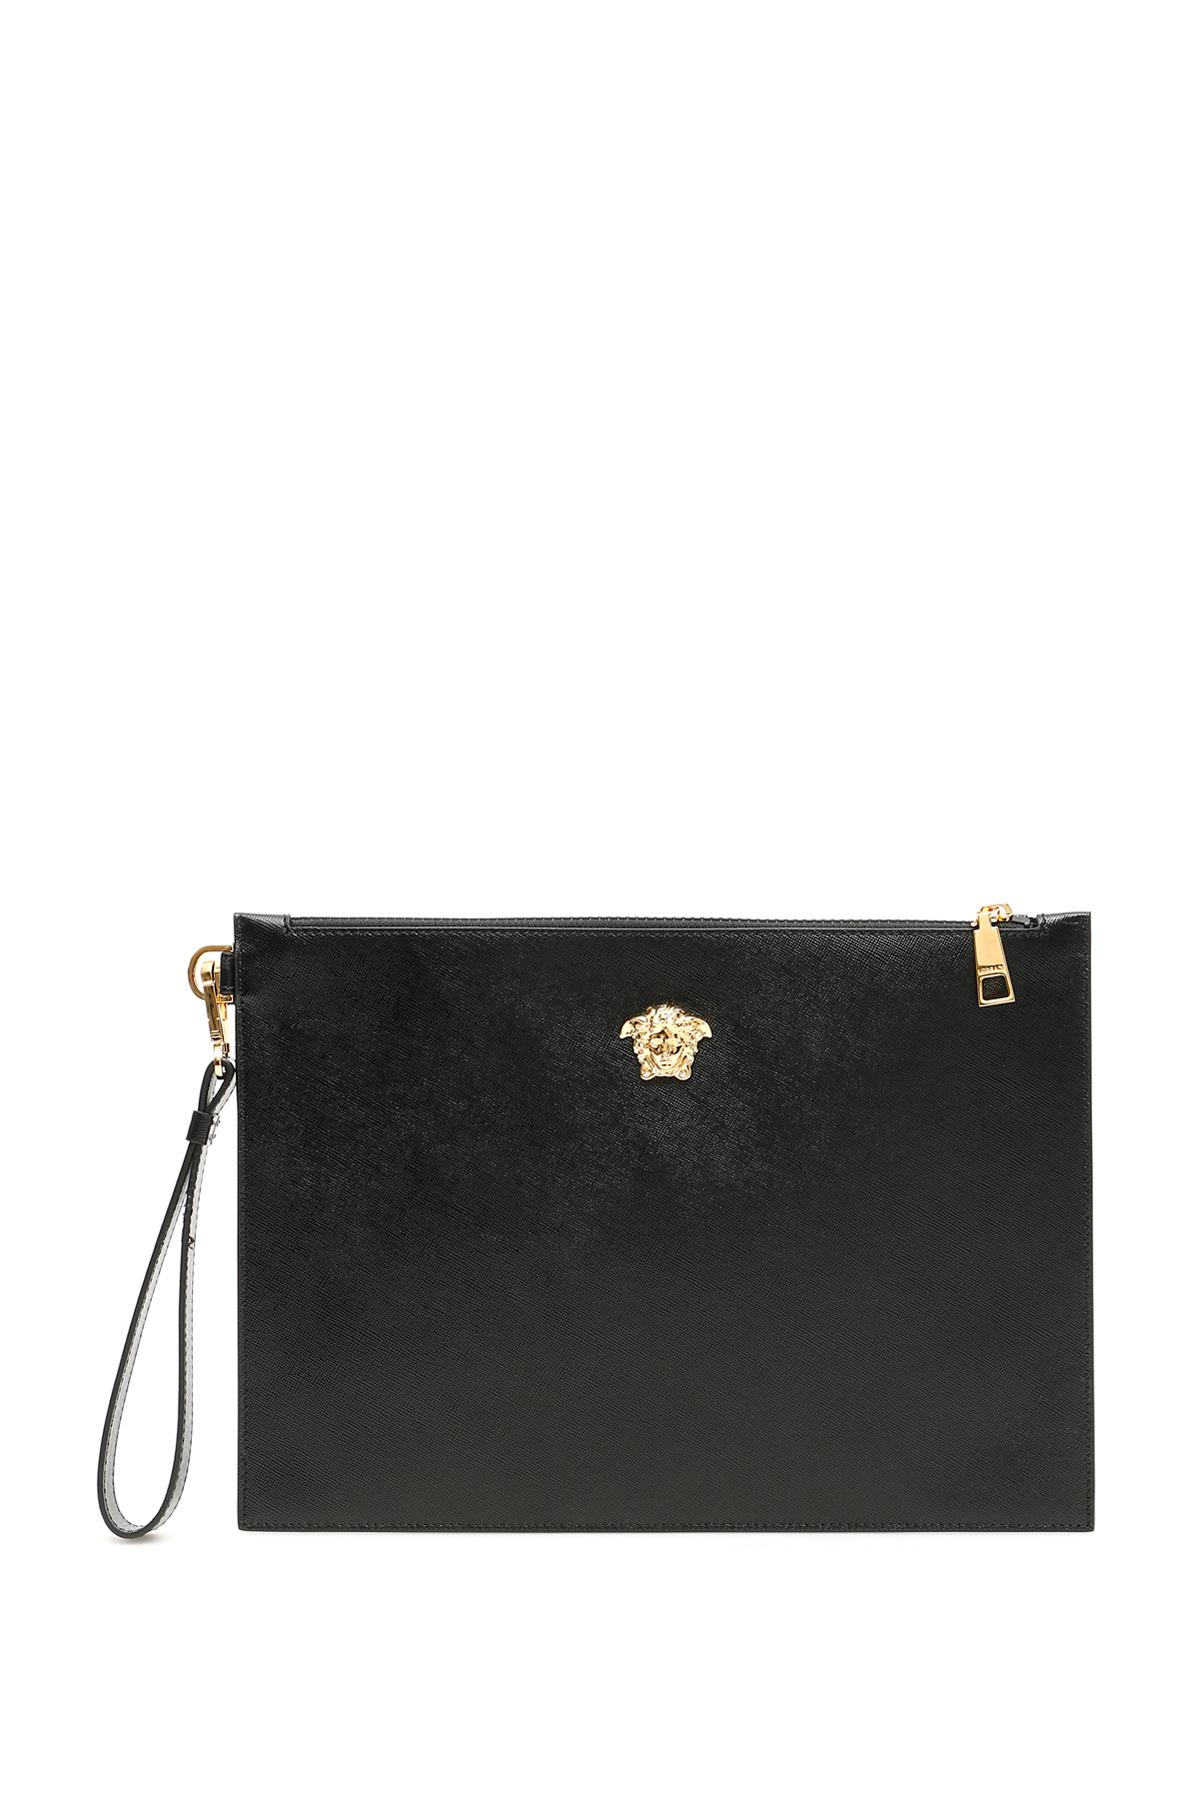 Lyst - Versace Medusa Palazzo Pouch in Black for Men 75653400cce49